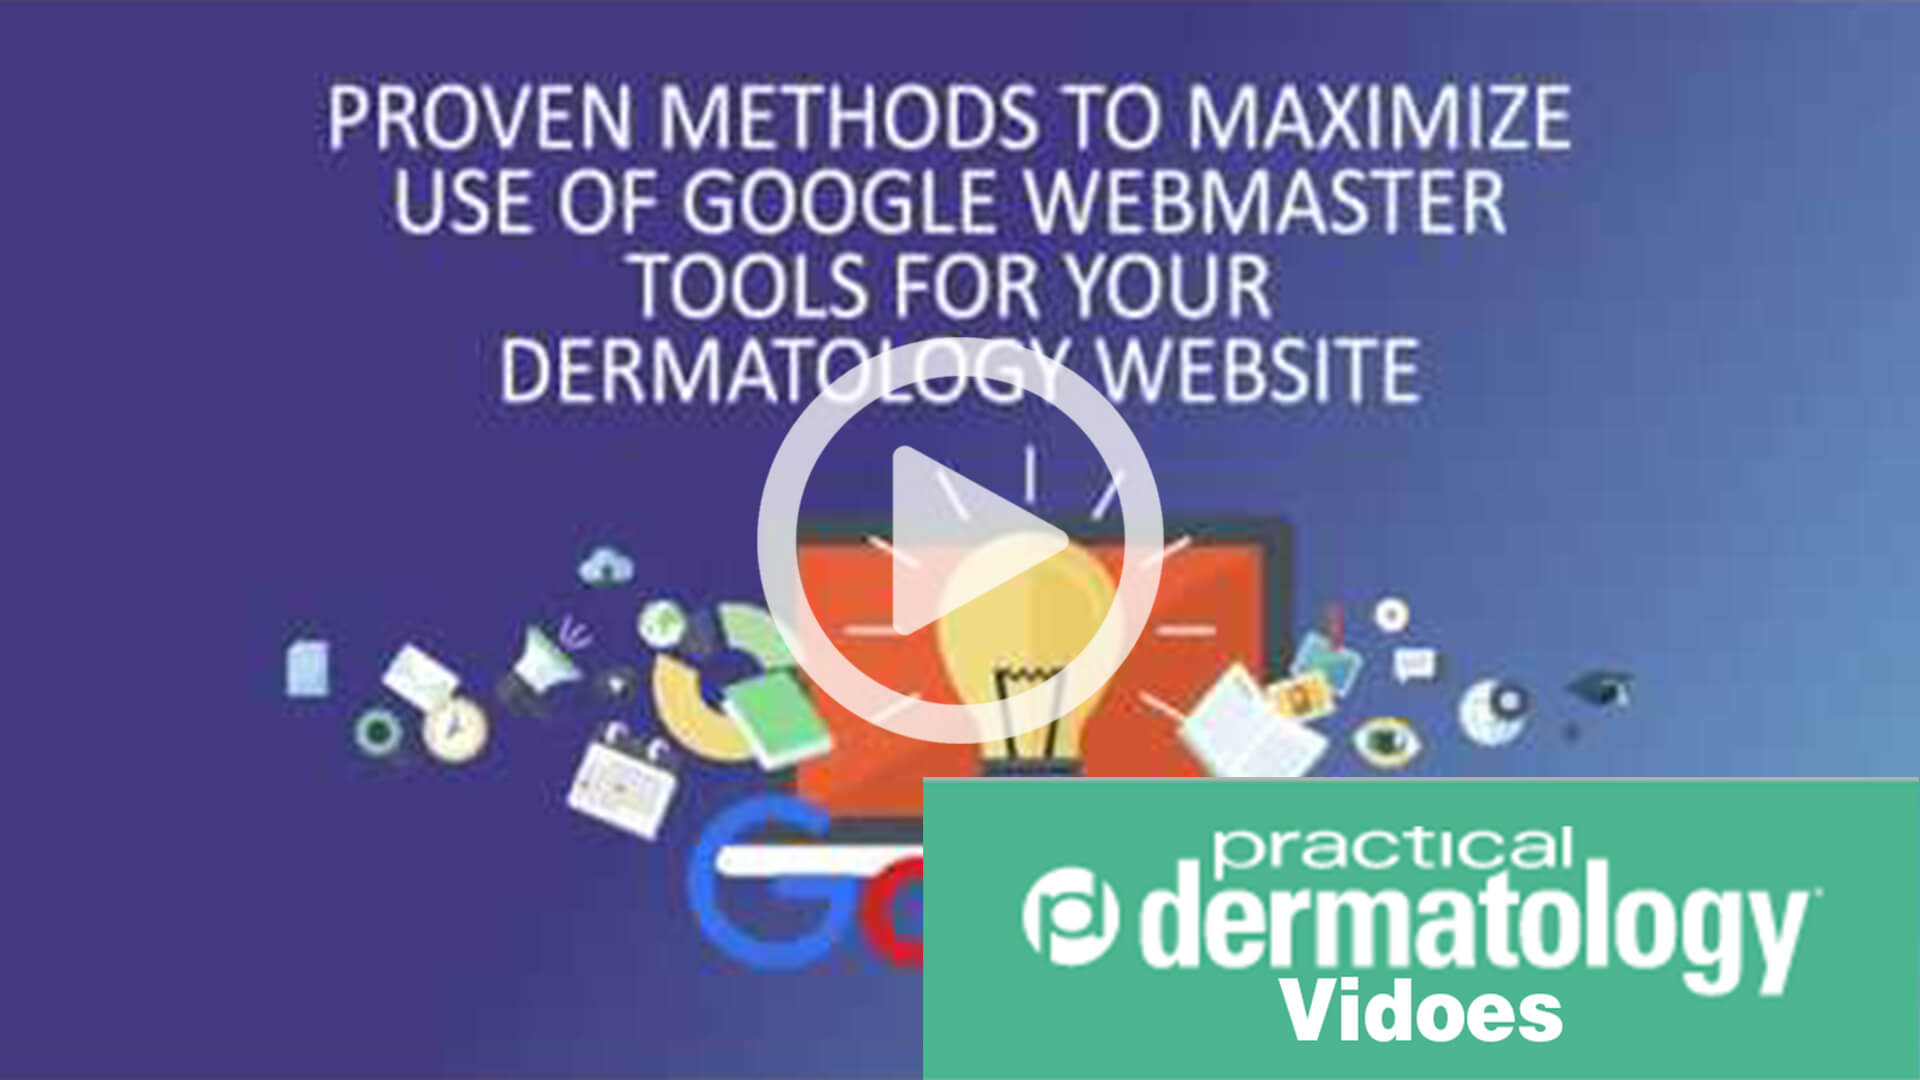 Possible Reasons for Low Search Rankings of your Dermatology Practice Website